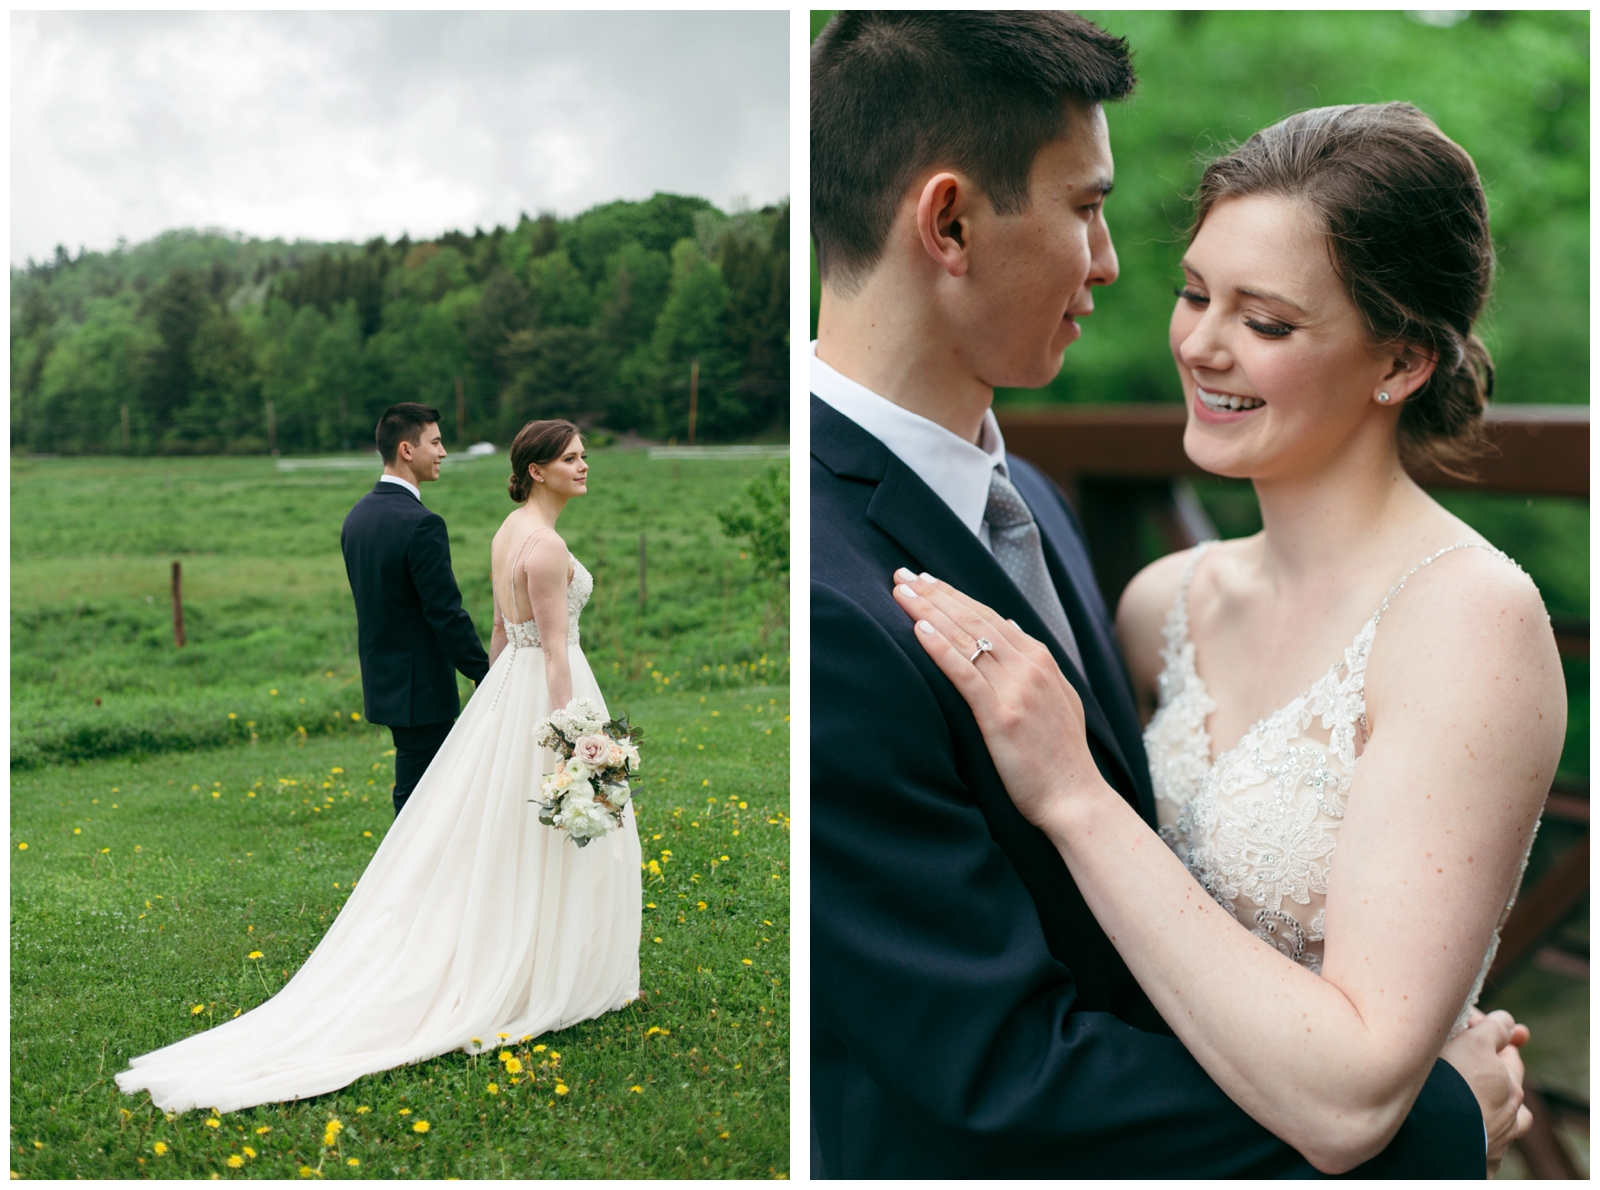 Vermont-Elopement-Topnotch-Stowe-Wedding-Bailey-Q-Photo-Boston-Wedding-Photographer-019.jpg